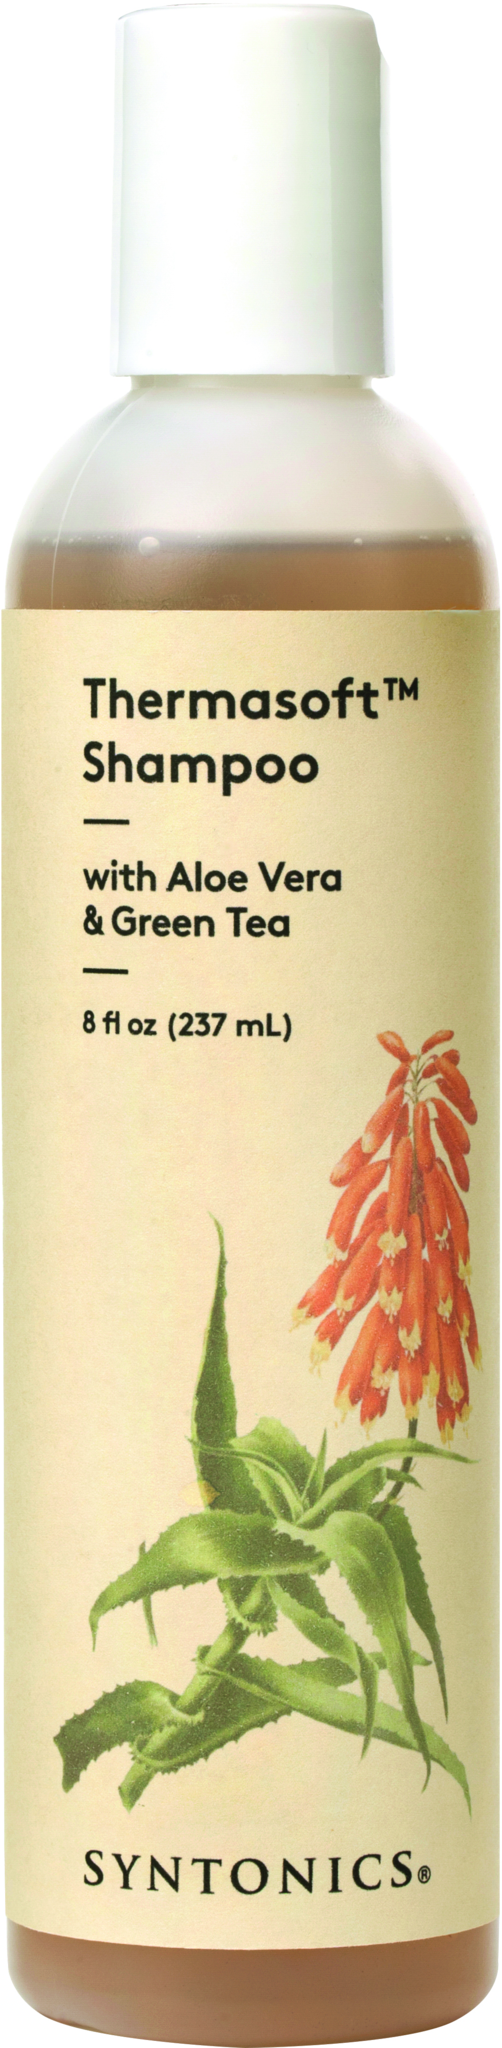 Thermasoft Shampoo (STEP 1)